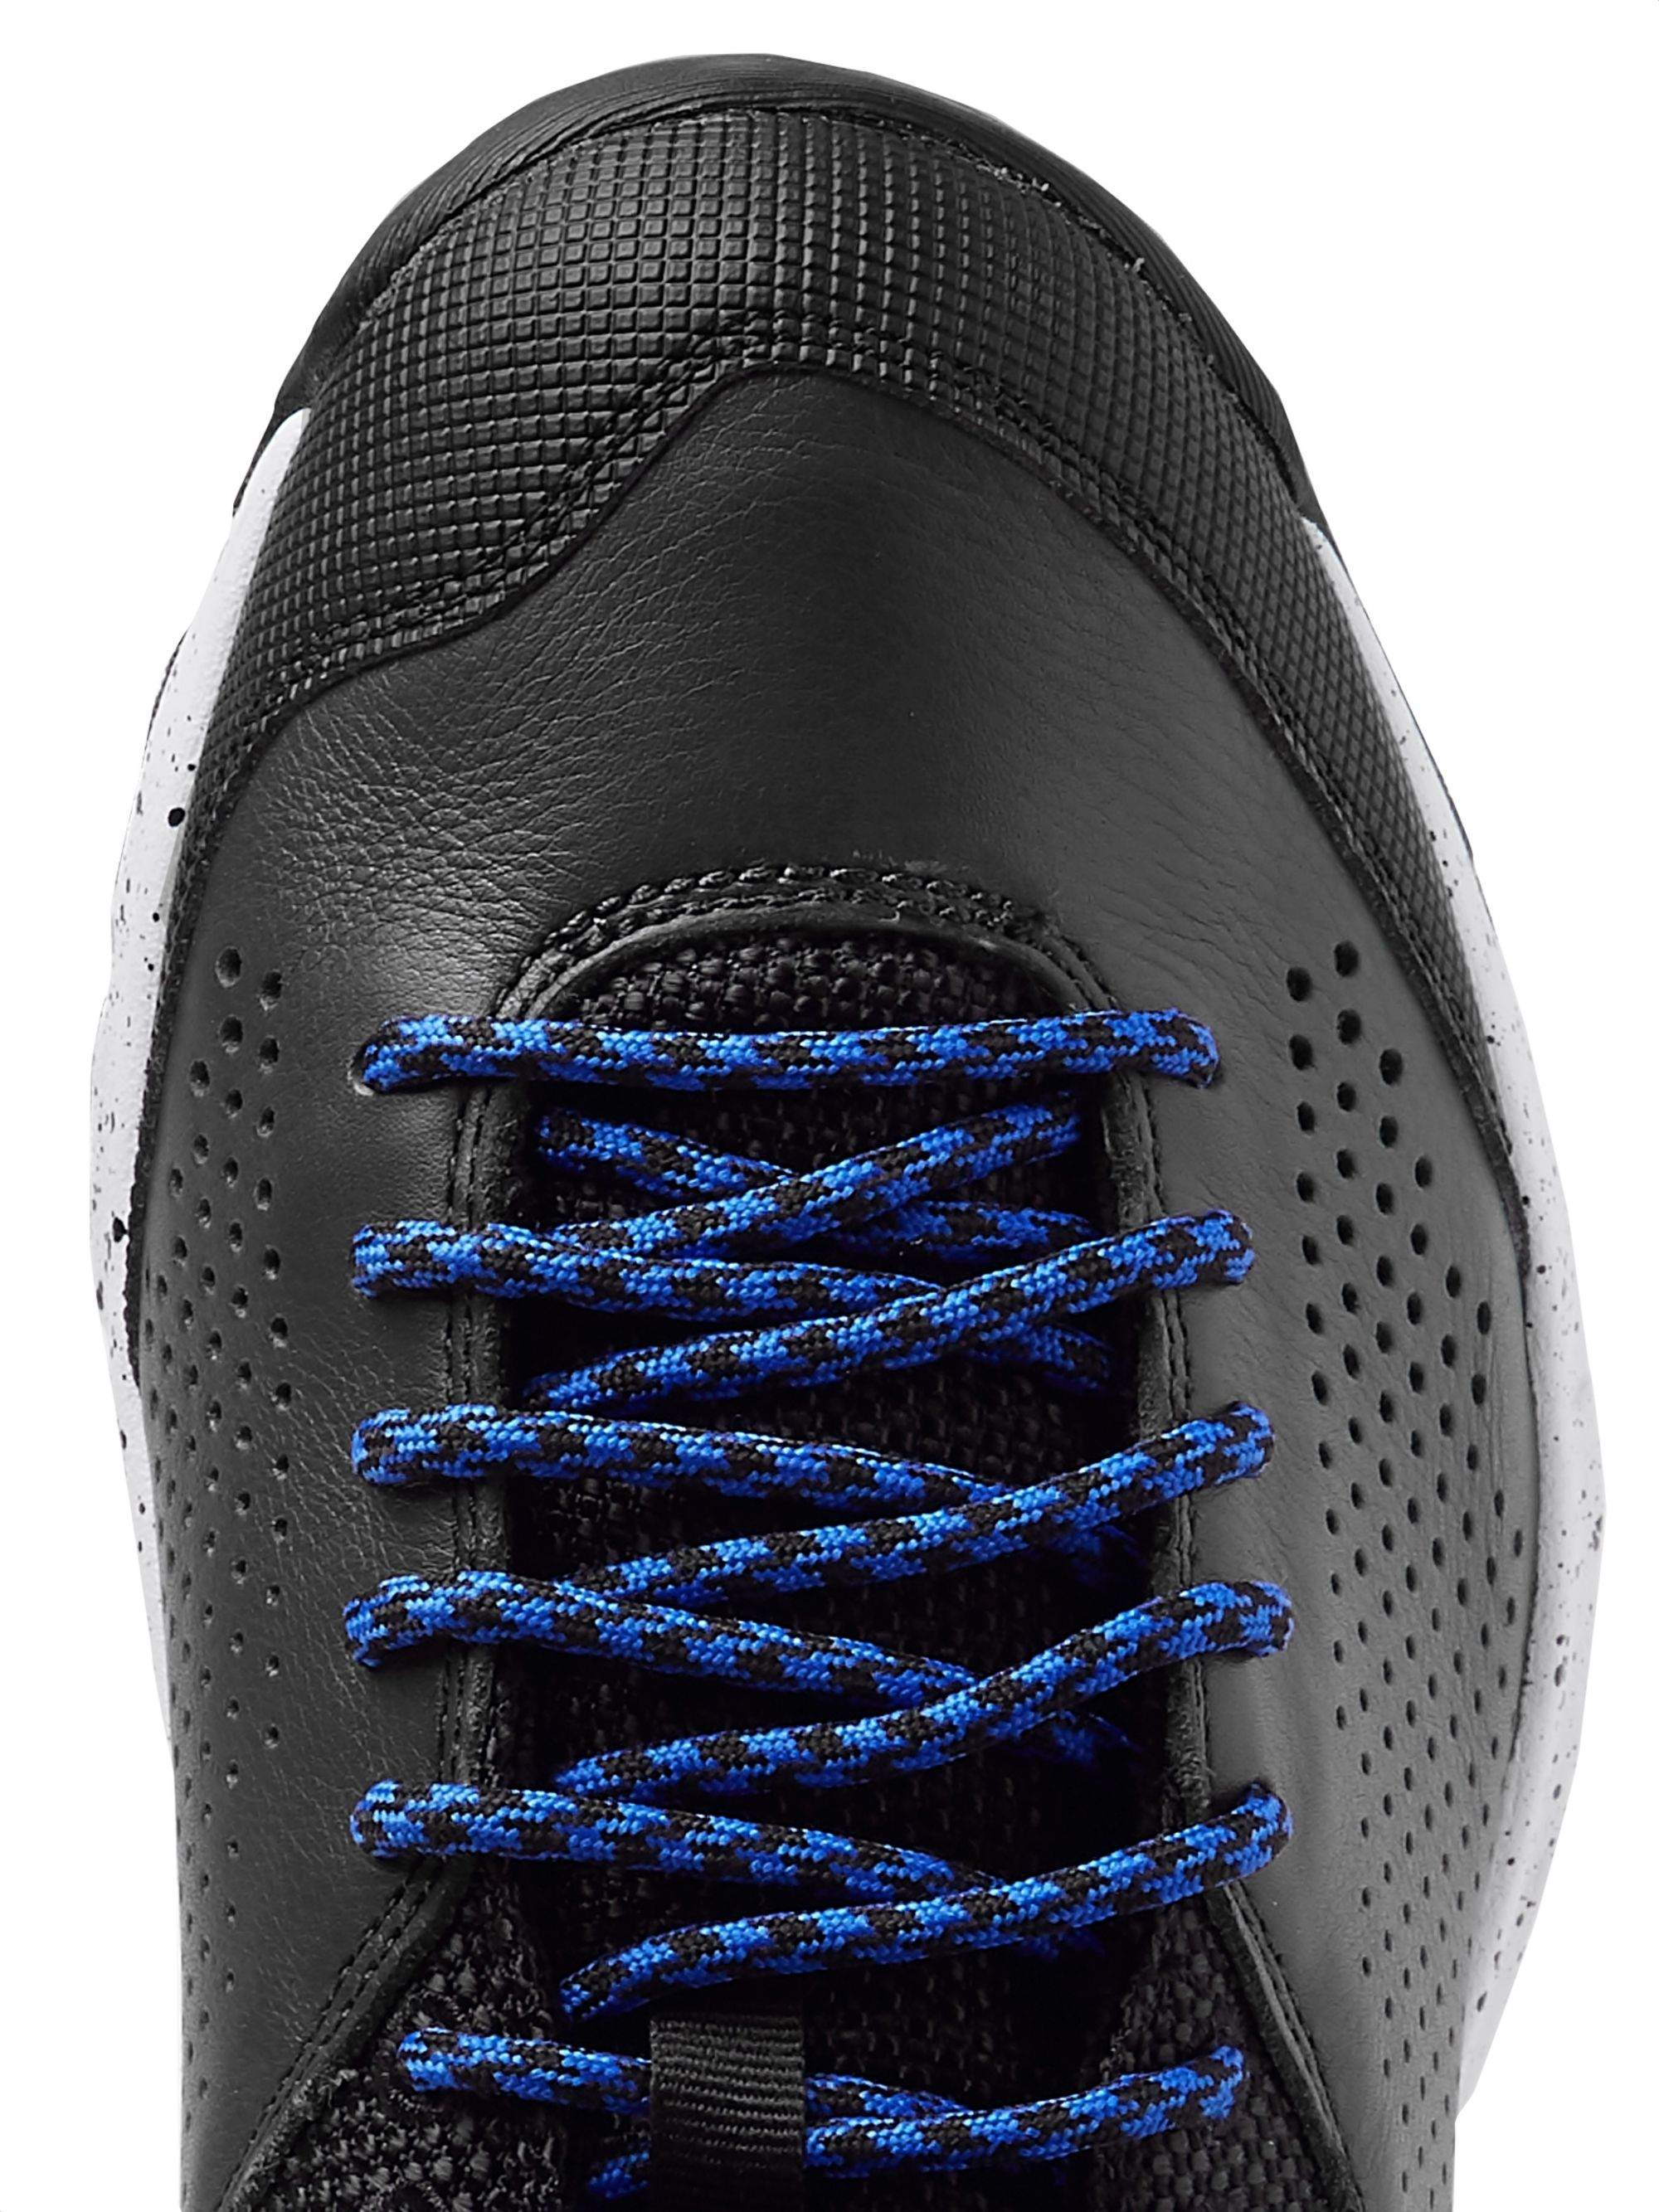 Nike ACG Okwahn II Mesh, Rubber and Leather Sneakers